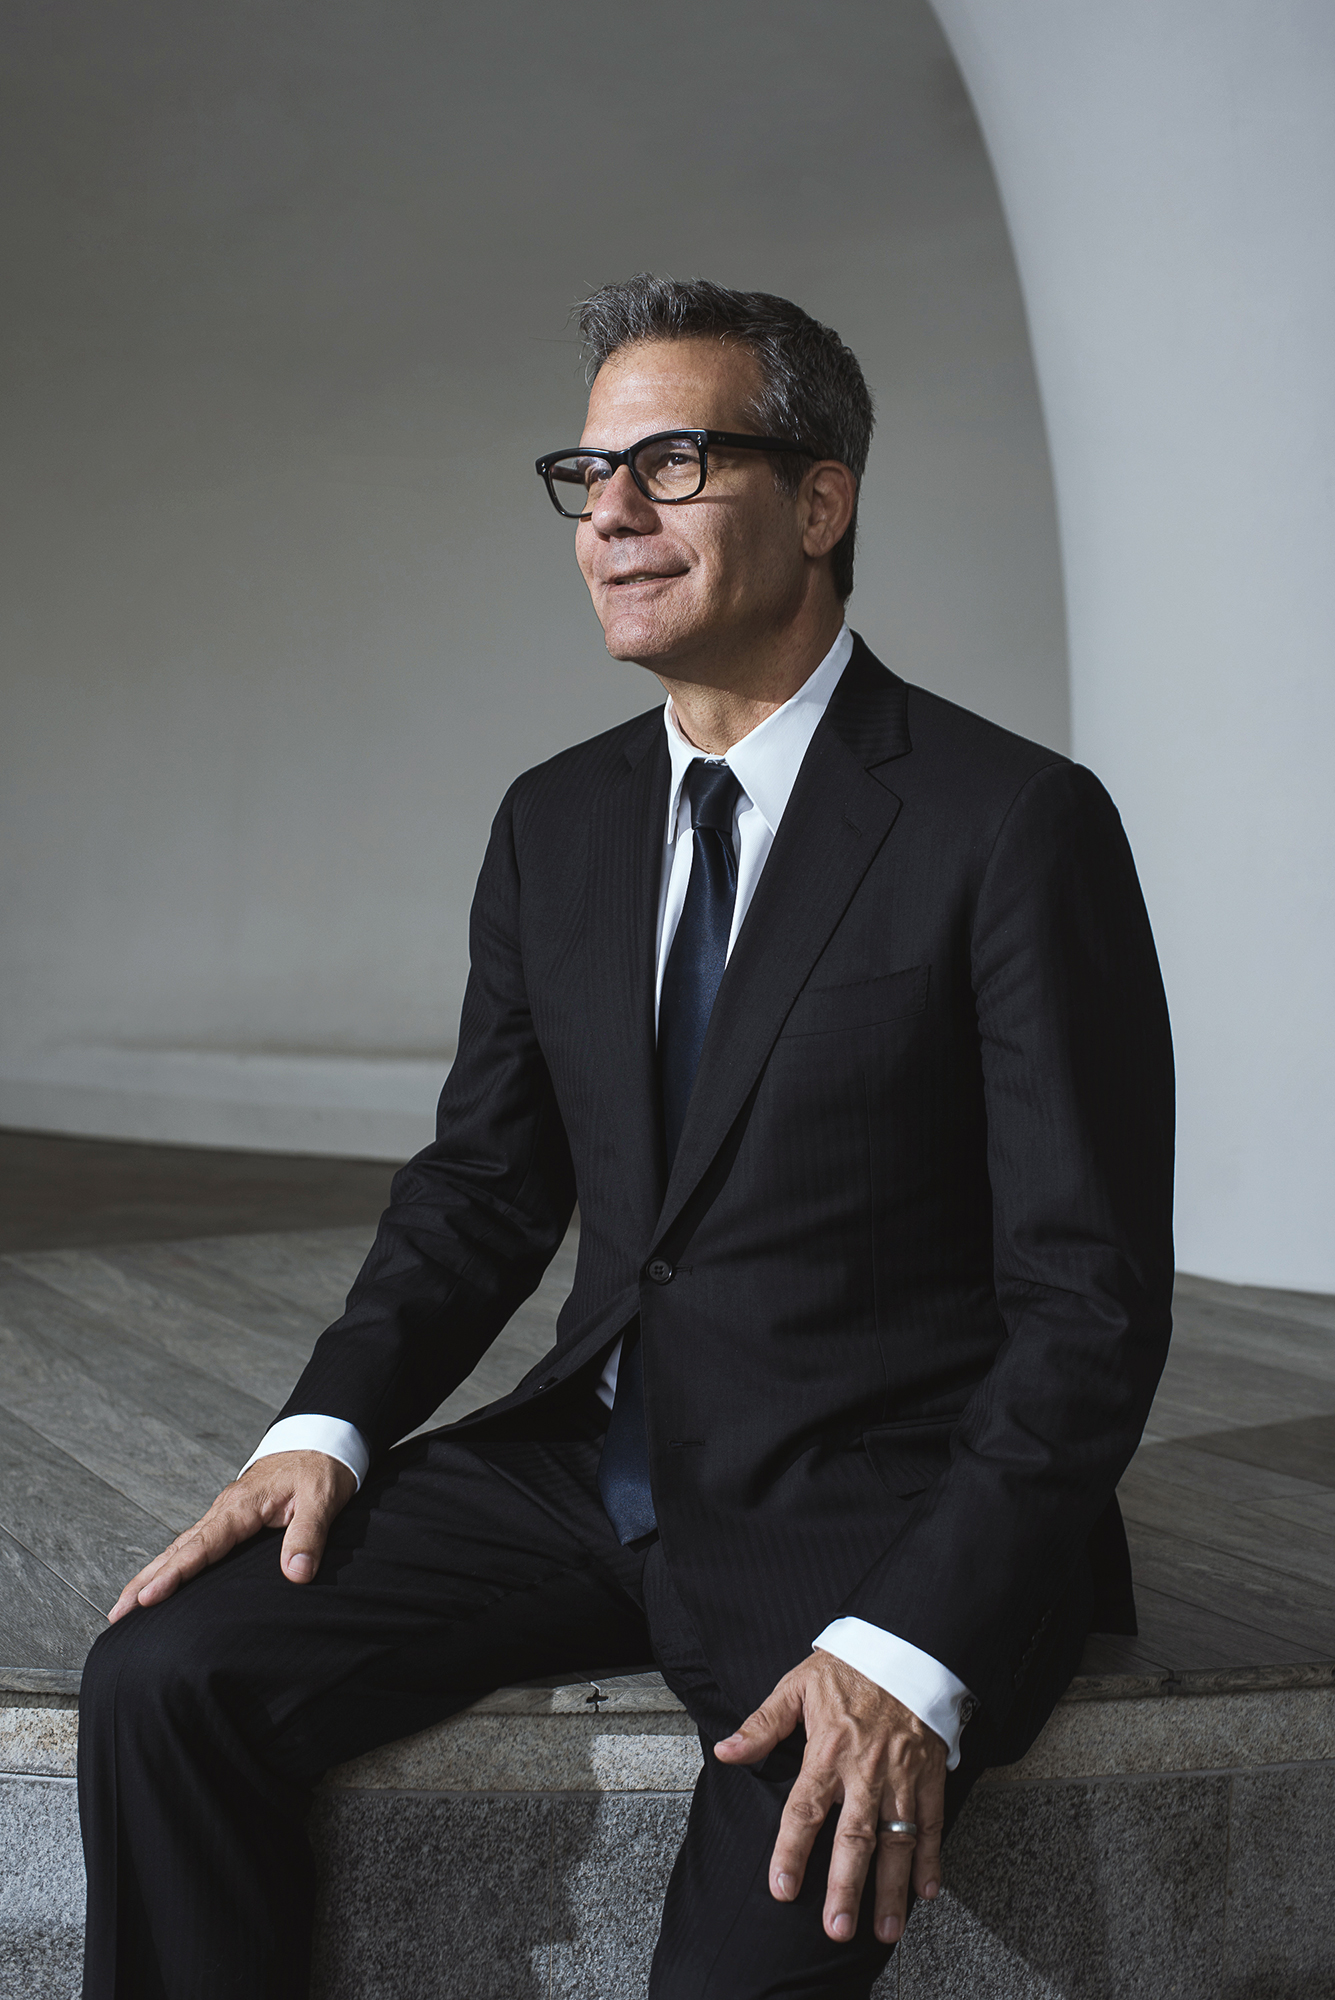 Richard Florida. Photo by Daria Malysheva